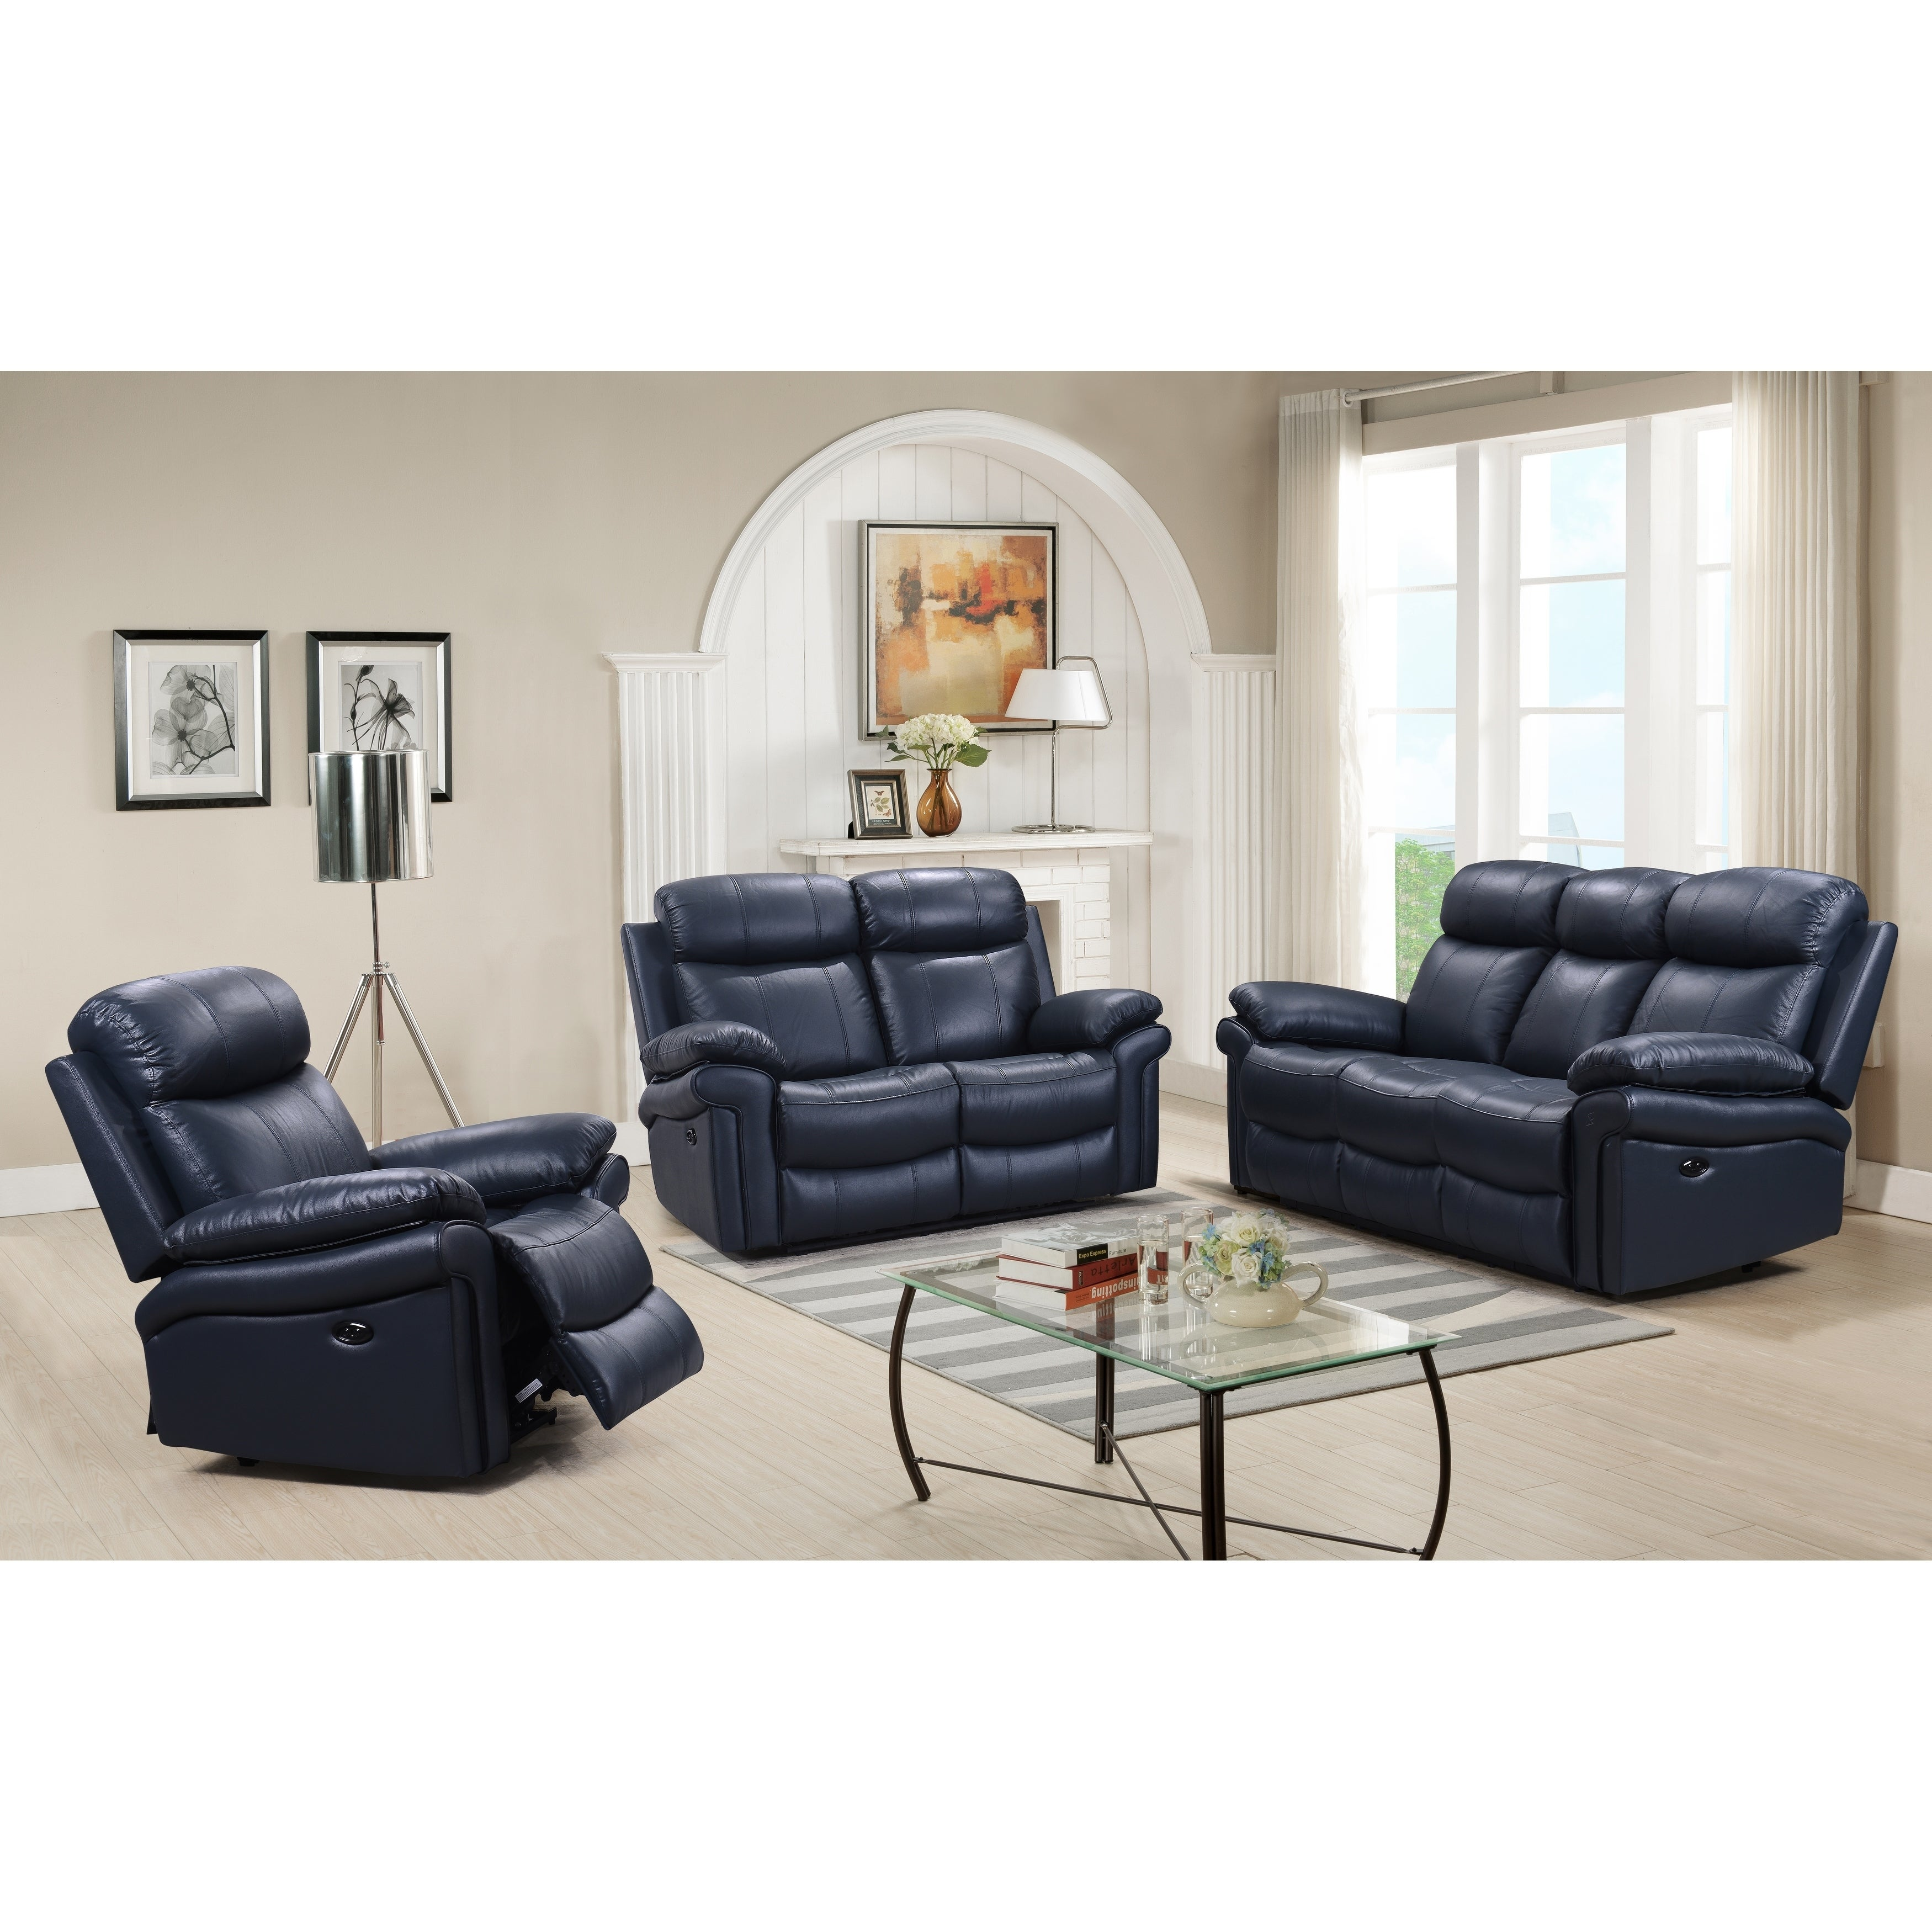 Shop Hudson Power Reclining Top Grain Leather Sofa (Brown/ Blue/ Red)    Free Shipping Today   Overstock.com   18007984